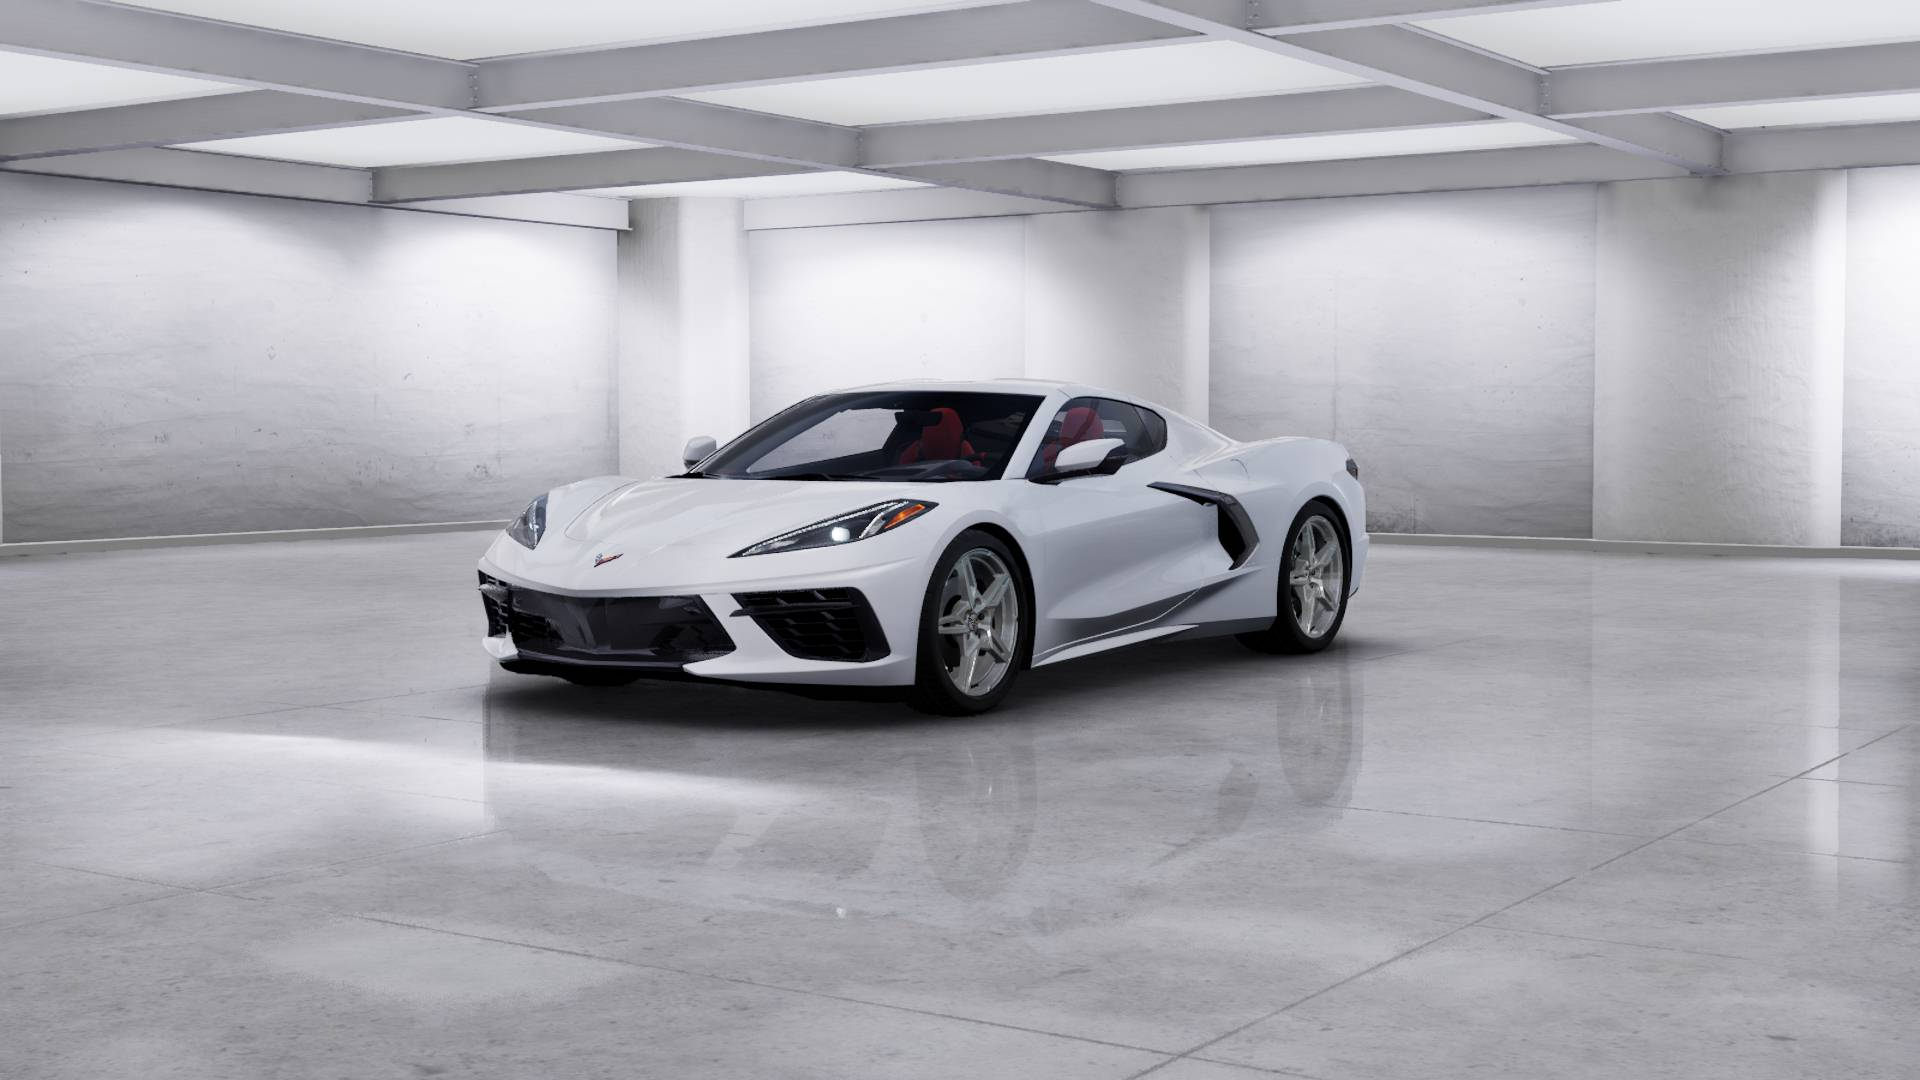 2020 corvette stingray colors and options